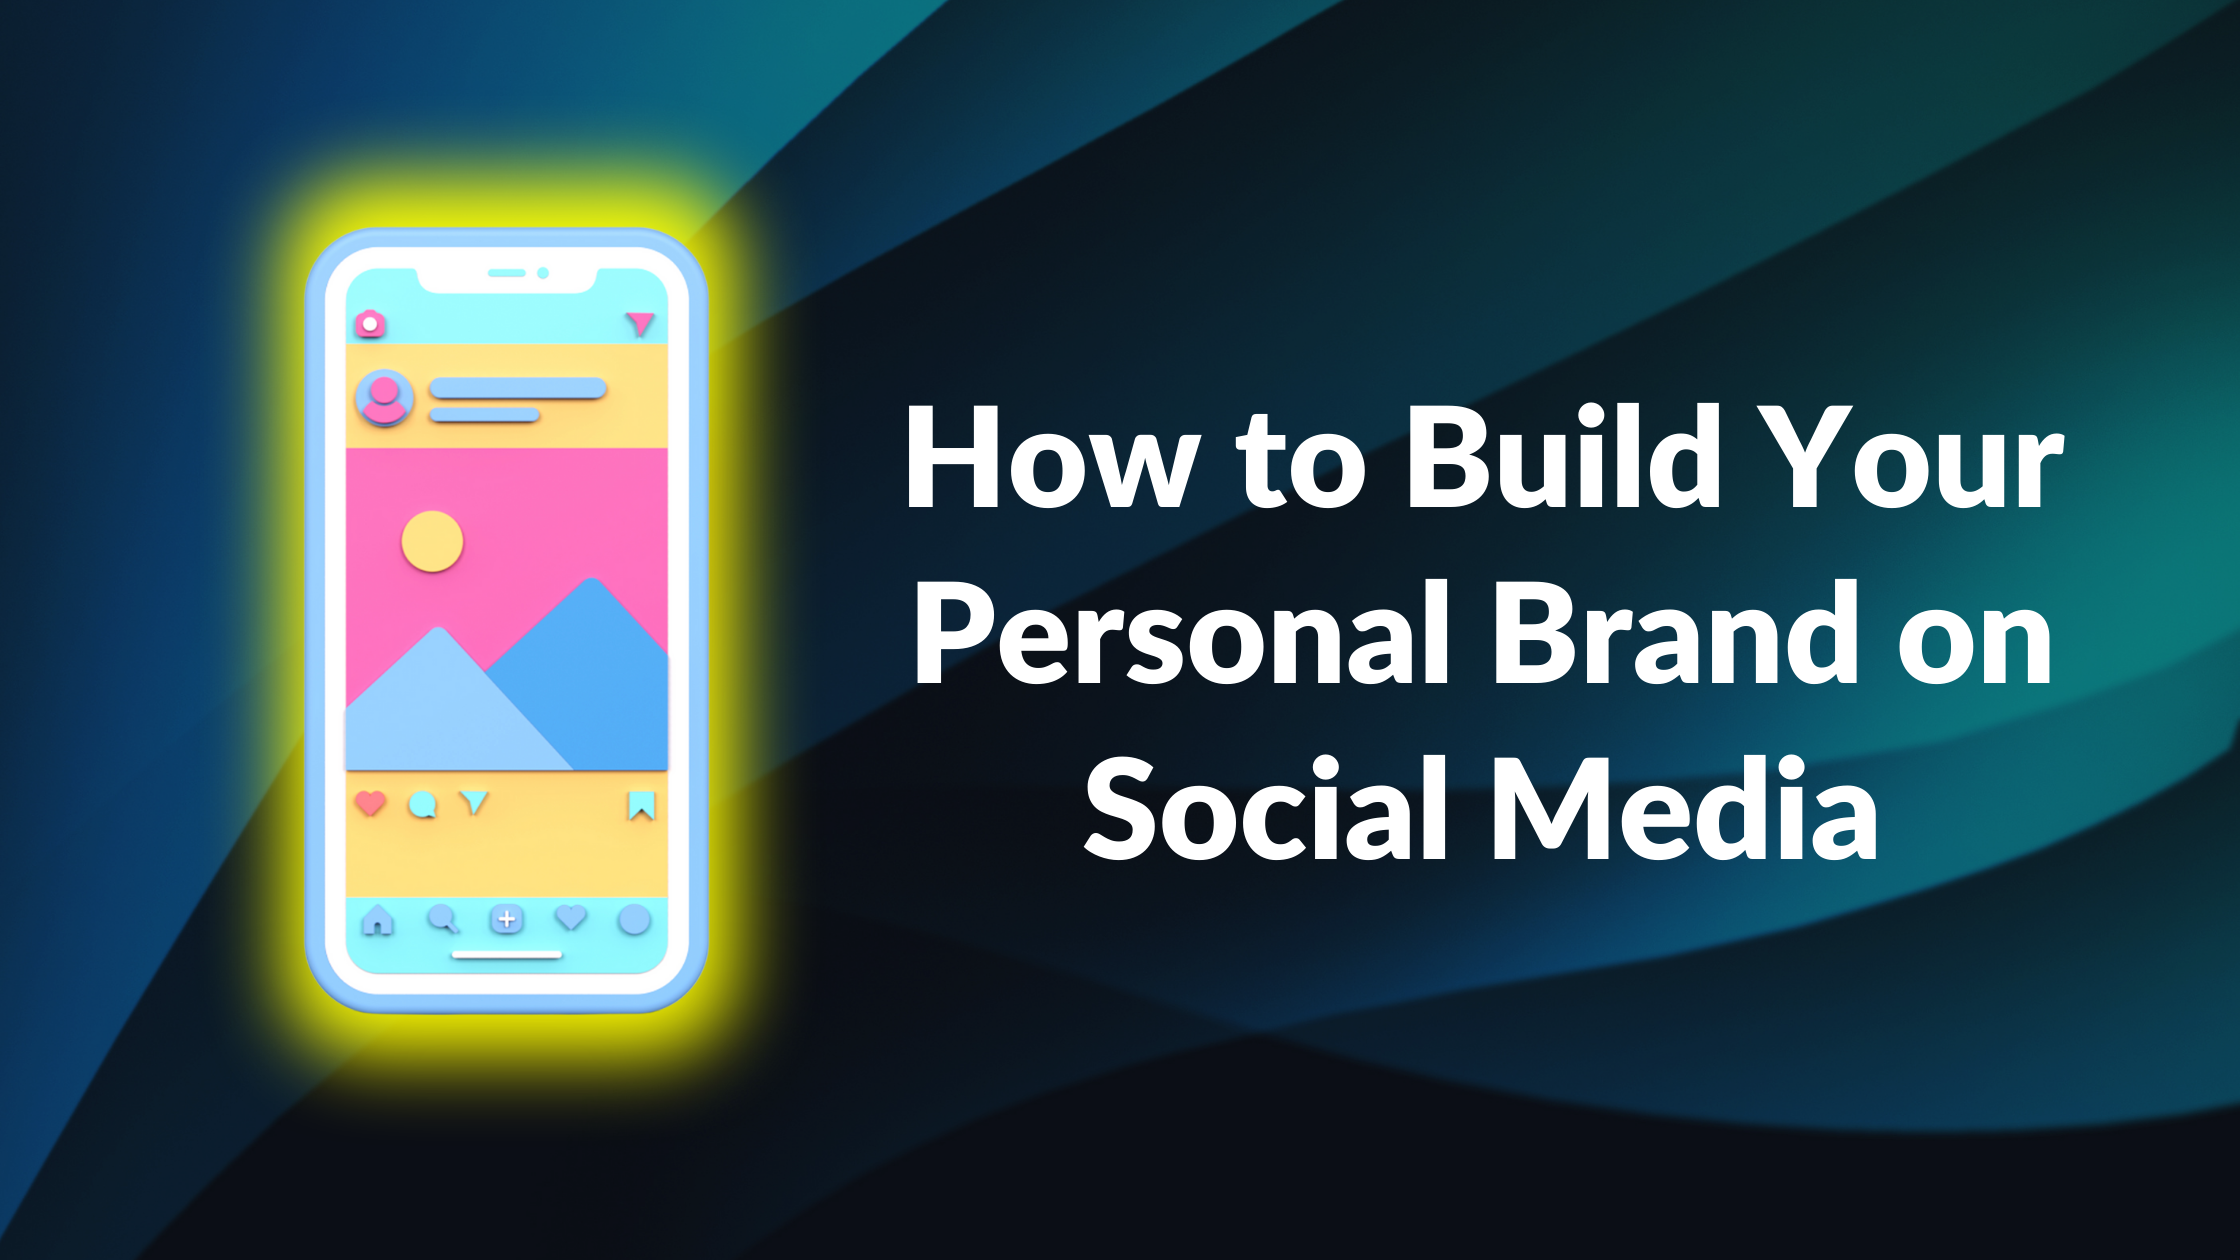 how to build your personal brand on social media, What is personal branding on social media, The complete guide to building your personal brand, creating a personal brand identity